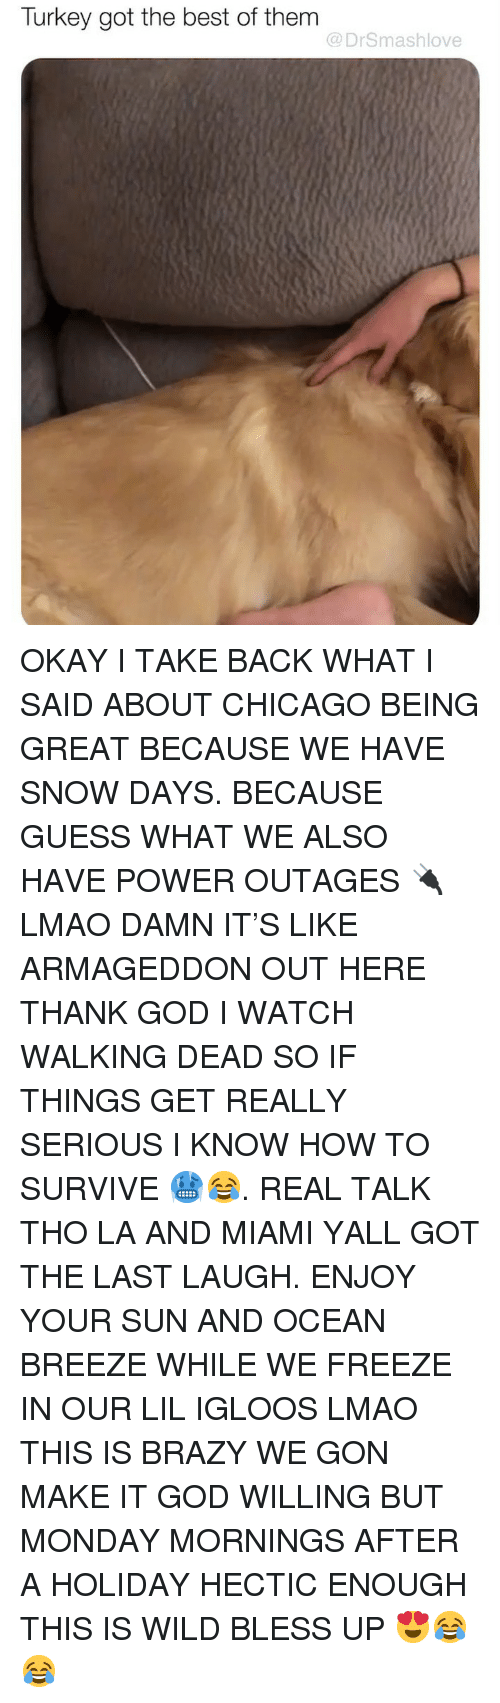 Bless Up, Chicago, and God: Turkey got the best of them  @DrSmashlove OKAY I TAKE BACK WHAT I SAID ABOUT CHICAGO BEING GREAT BECAUSE WE HAVE SNOW DAYS. BECAUSE GUESS WHAT WE ALSO HAVE POWER OUTAGES 🔌 LMAO DAMN IT'S LIKE ARMAGEDDON OUT HERE THANK GOD I WATCH WALKING DEAD SO IF THINGS GET REALLY SERIOUS I KNOW HOW TO SURVIVE 🥶😂. REAL TALK THO LA AND MIAMI YALL GOT THE LAST LAUGH. ENJOY YOUR SUN AND OCEAN BREEZE WHILE WE FREEZE IN OUR LIL IGLOOS LMAO THIS IS BRAZY WE GON MAKE IT GOD WILLING BUT MONDAY MORNINGS AFTER A HOLIDAY HECTIC ENOUGH THIS IS WILD BLESS UP 😍😂😂